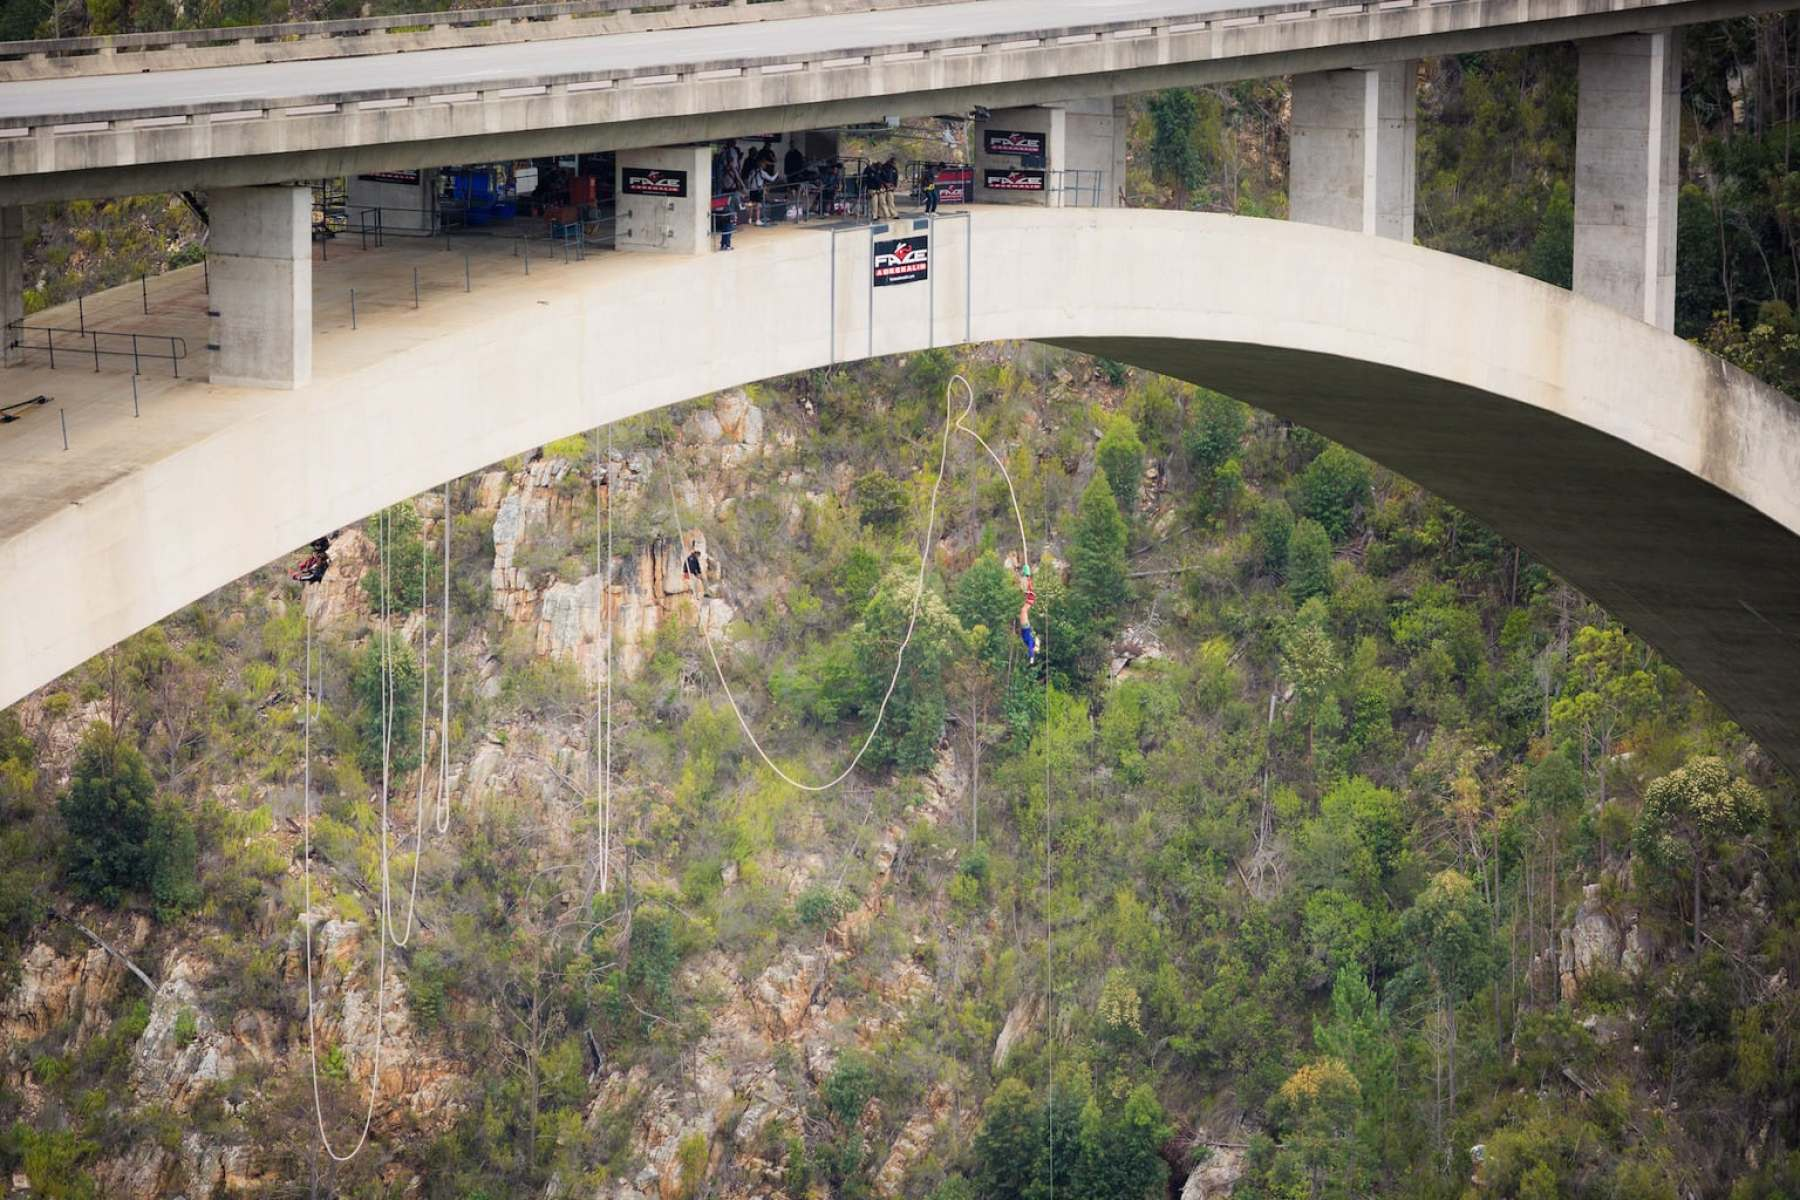 Bungy jumping in Stormsrivier